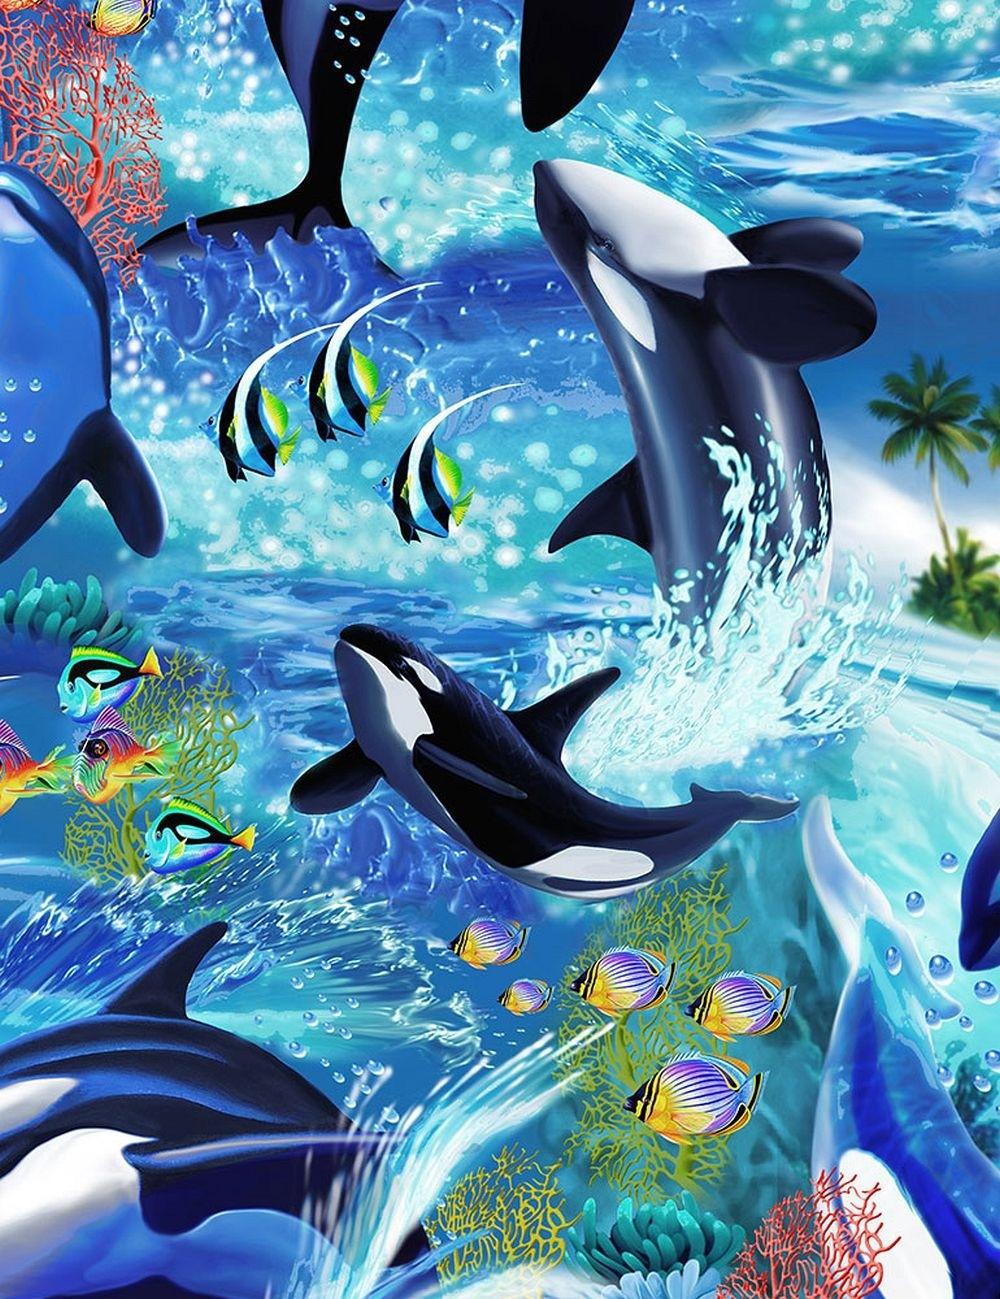 Killerwhales 4-Sided Hugger Comforter by California Kids